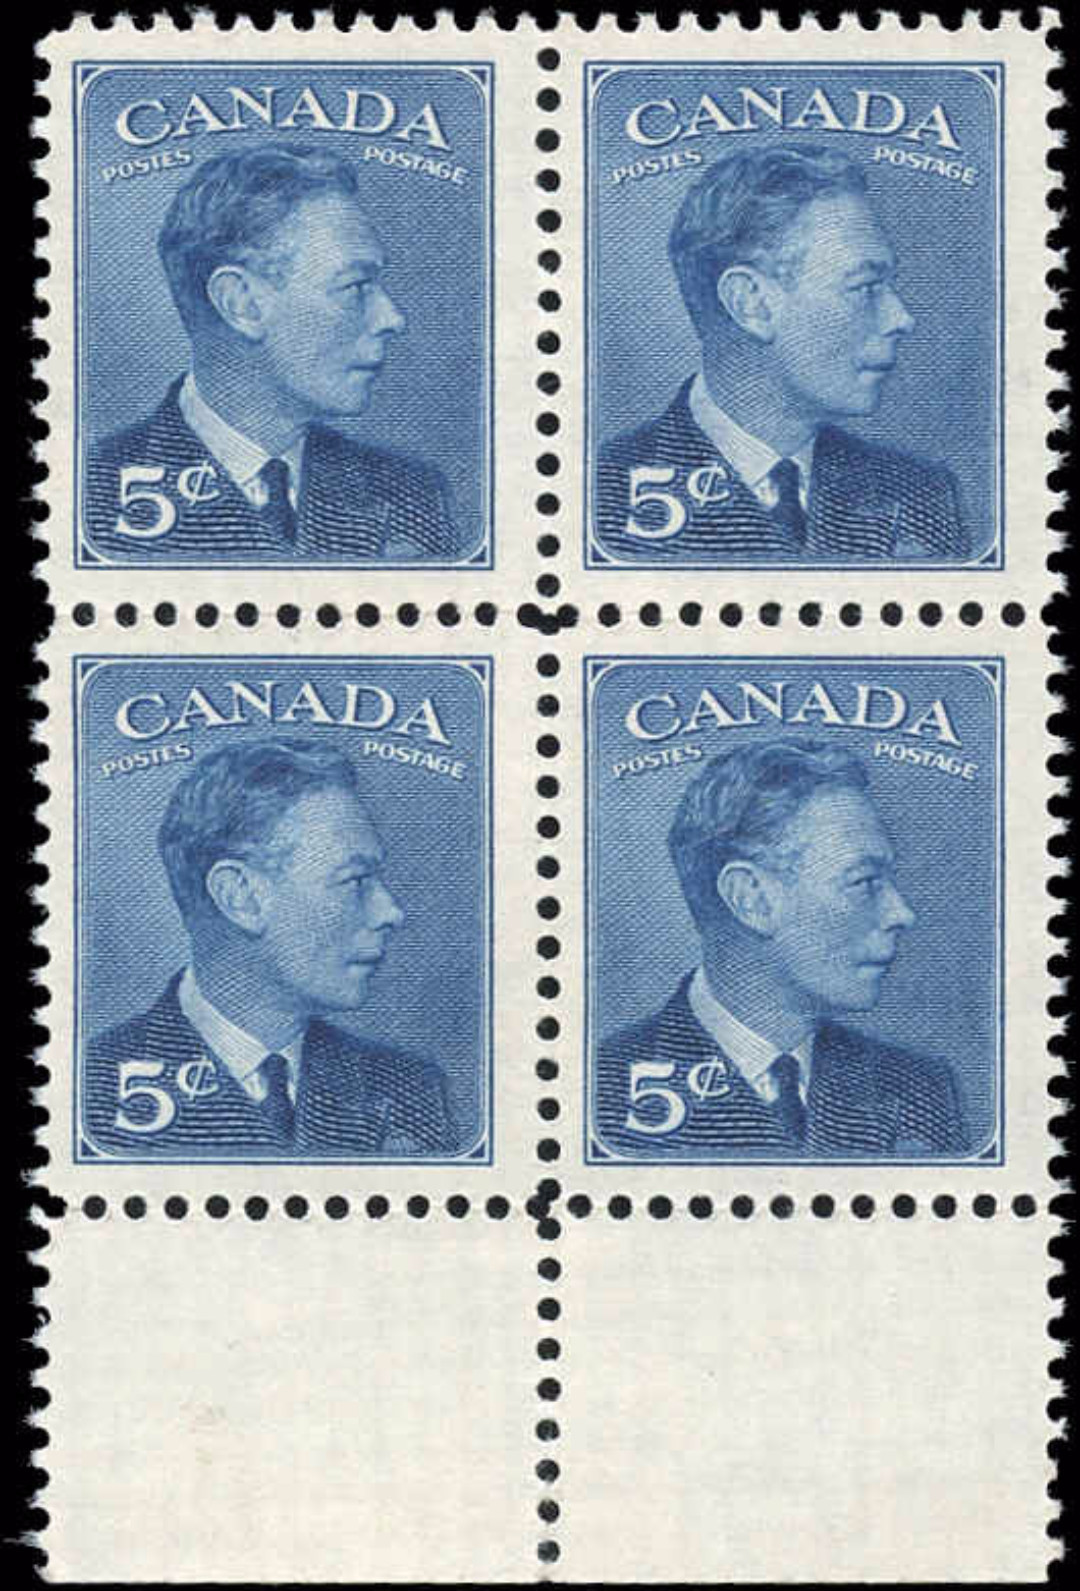 Canada #288, Postes-Postage Issue, F-VF, MNH